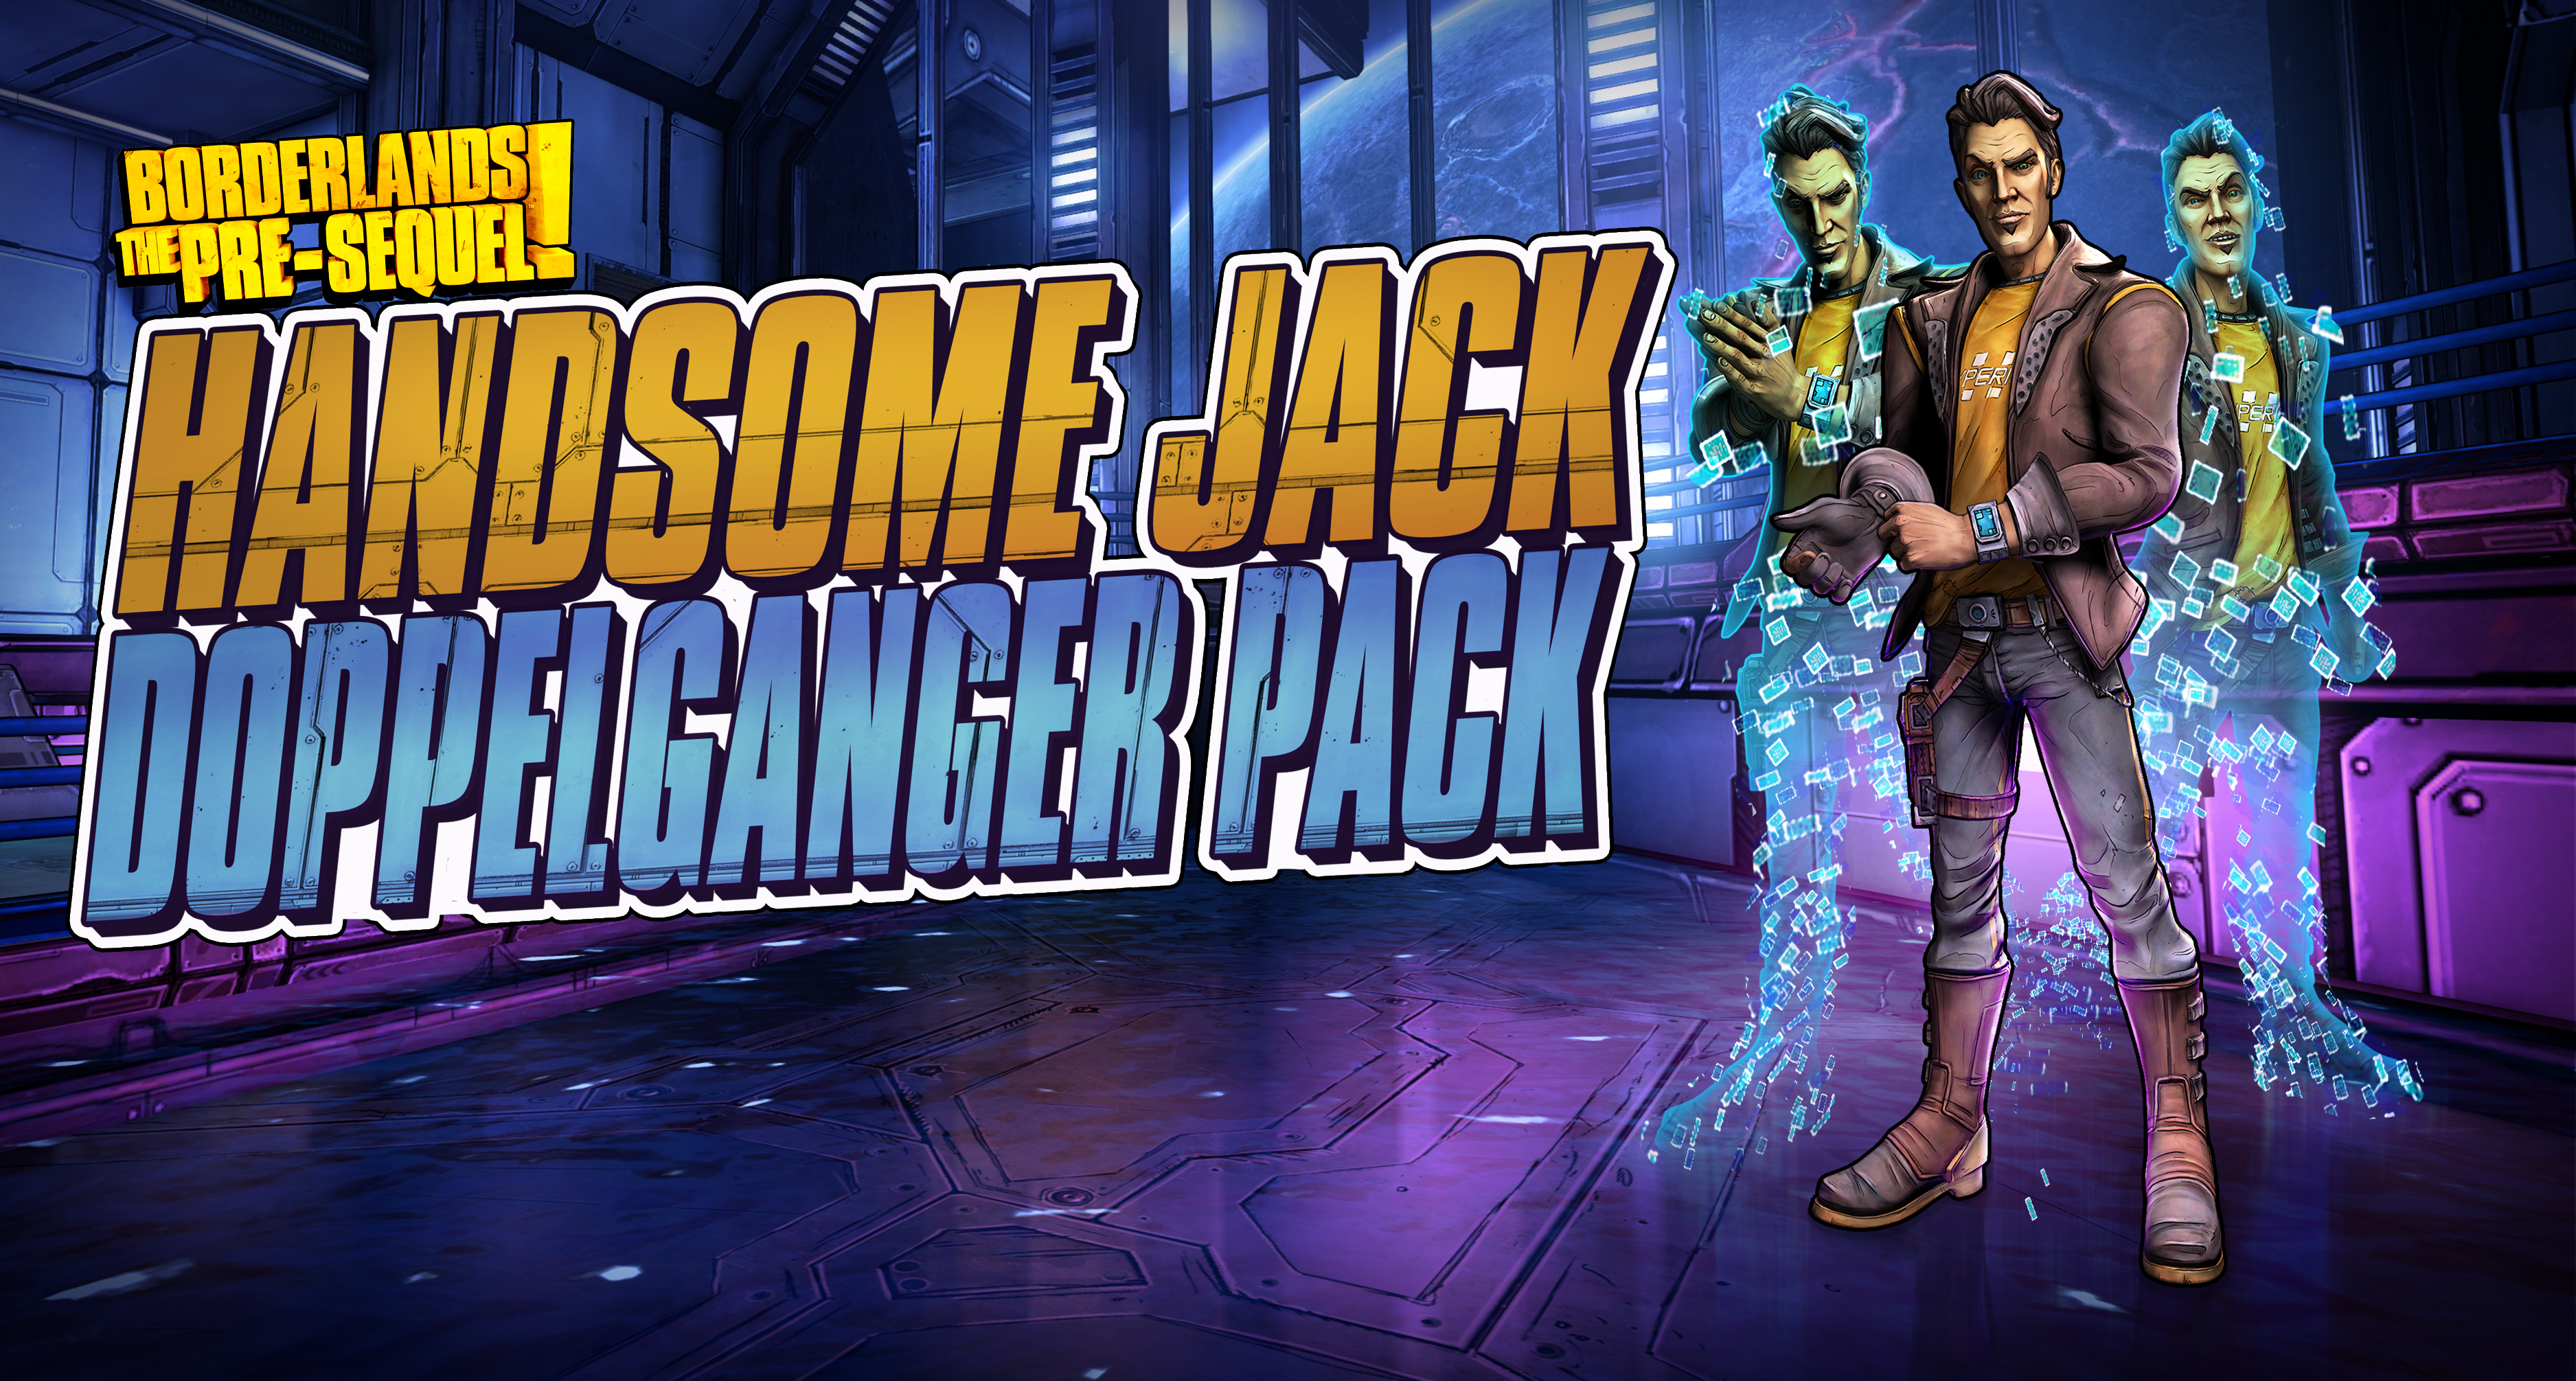 Borderlands Pre-Sequel character: Handsome Jack